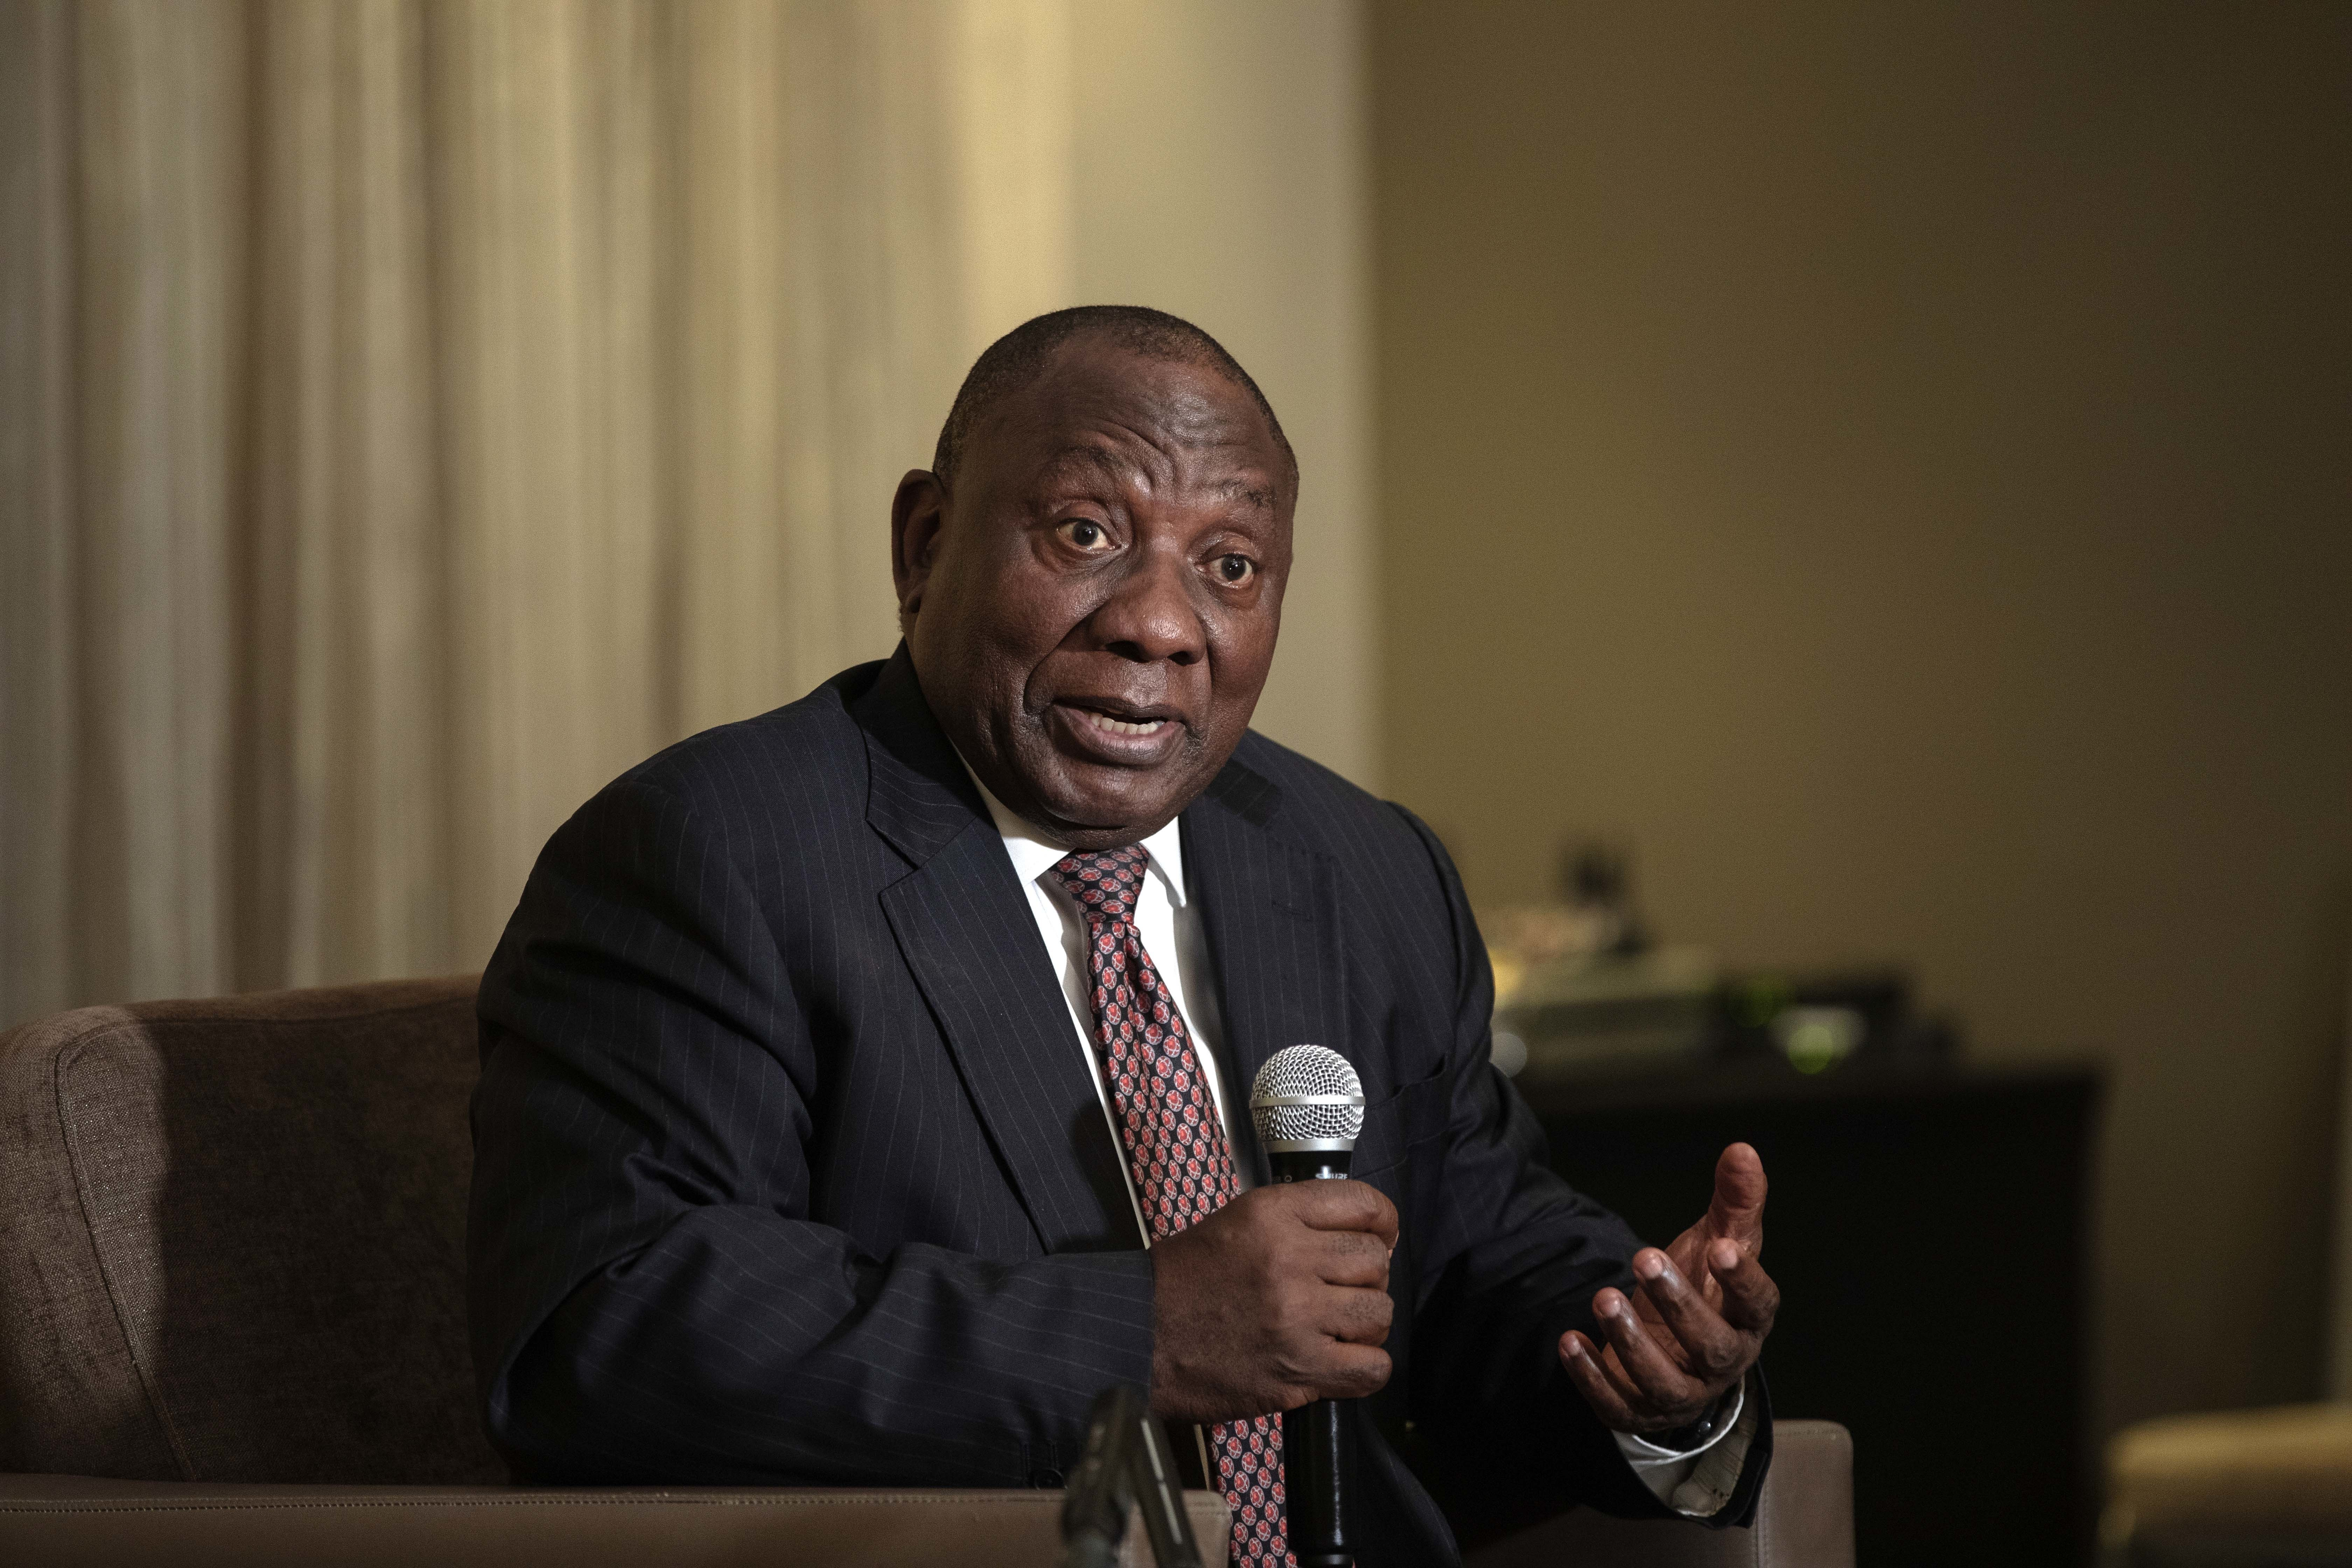 South African President Cyril Ramaphosa addresses members of the Foreign Correspondents Association in Johannesburg, Thursday, Nov. 1, 2018. Ramaphosa said his country has survived a